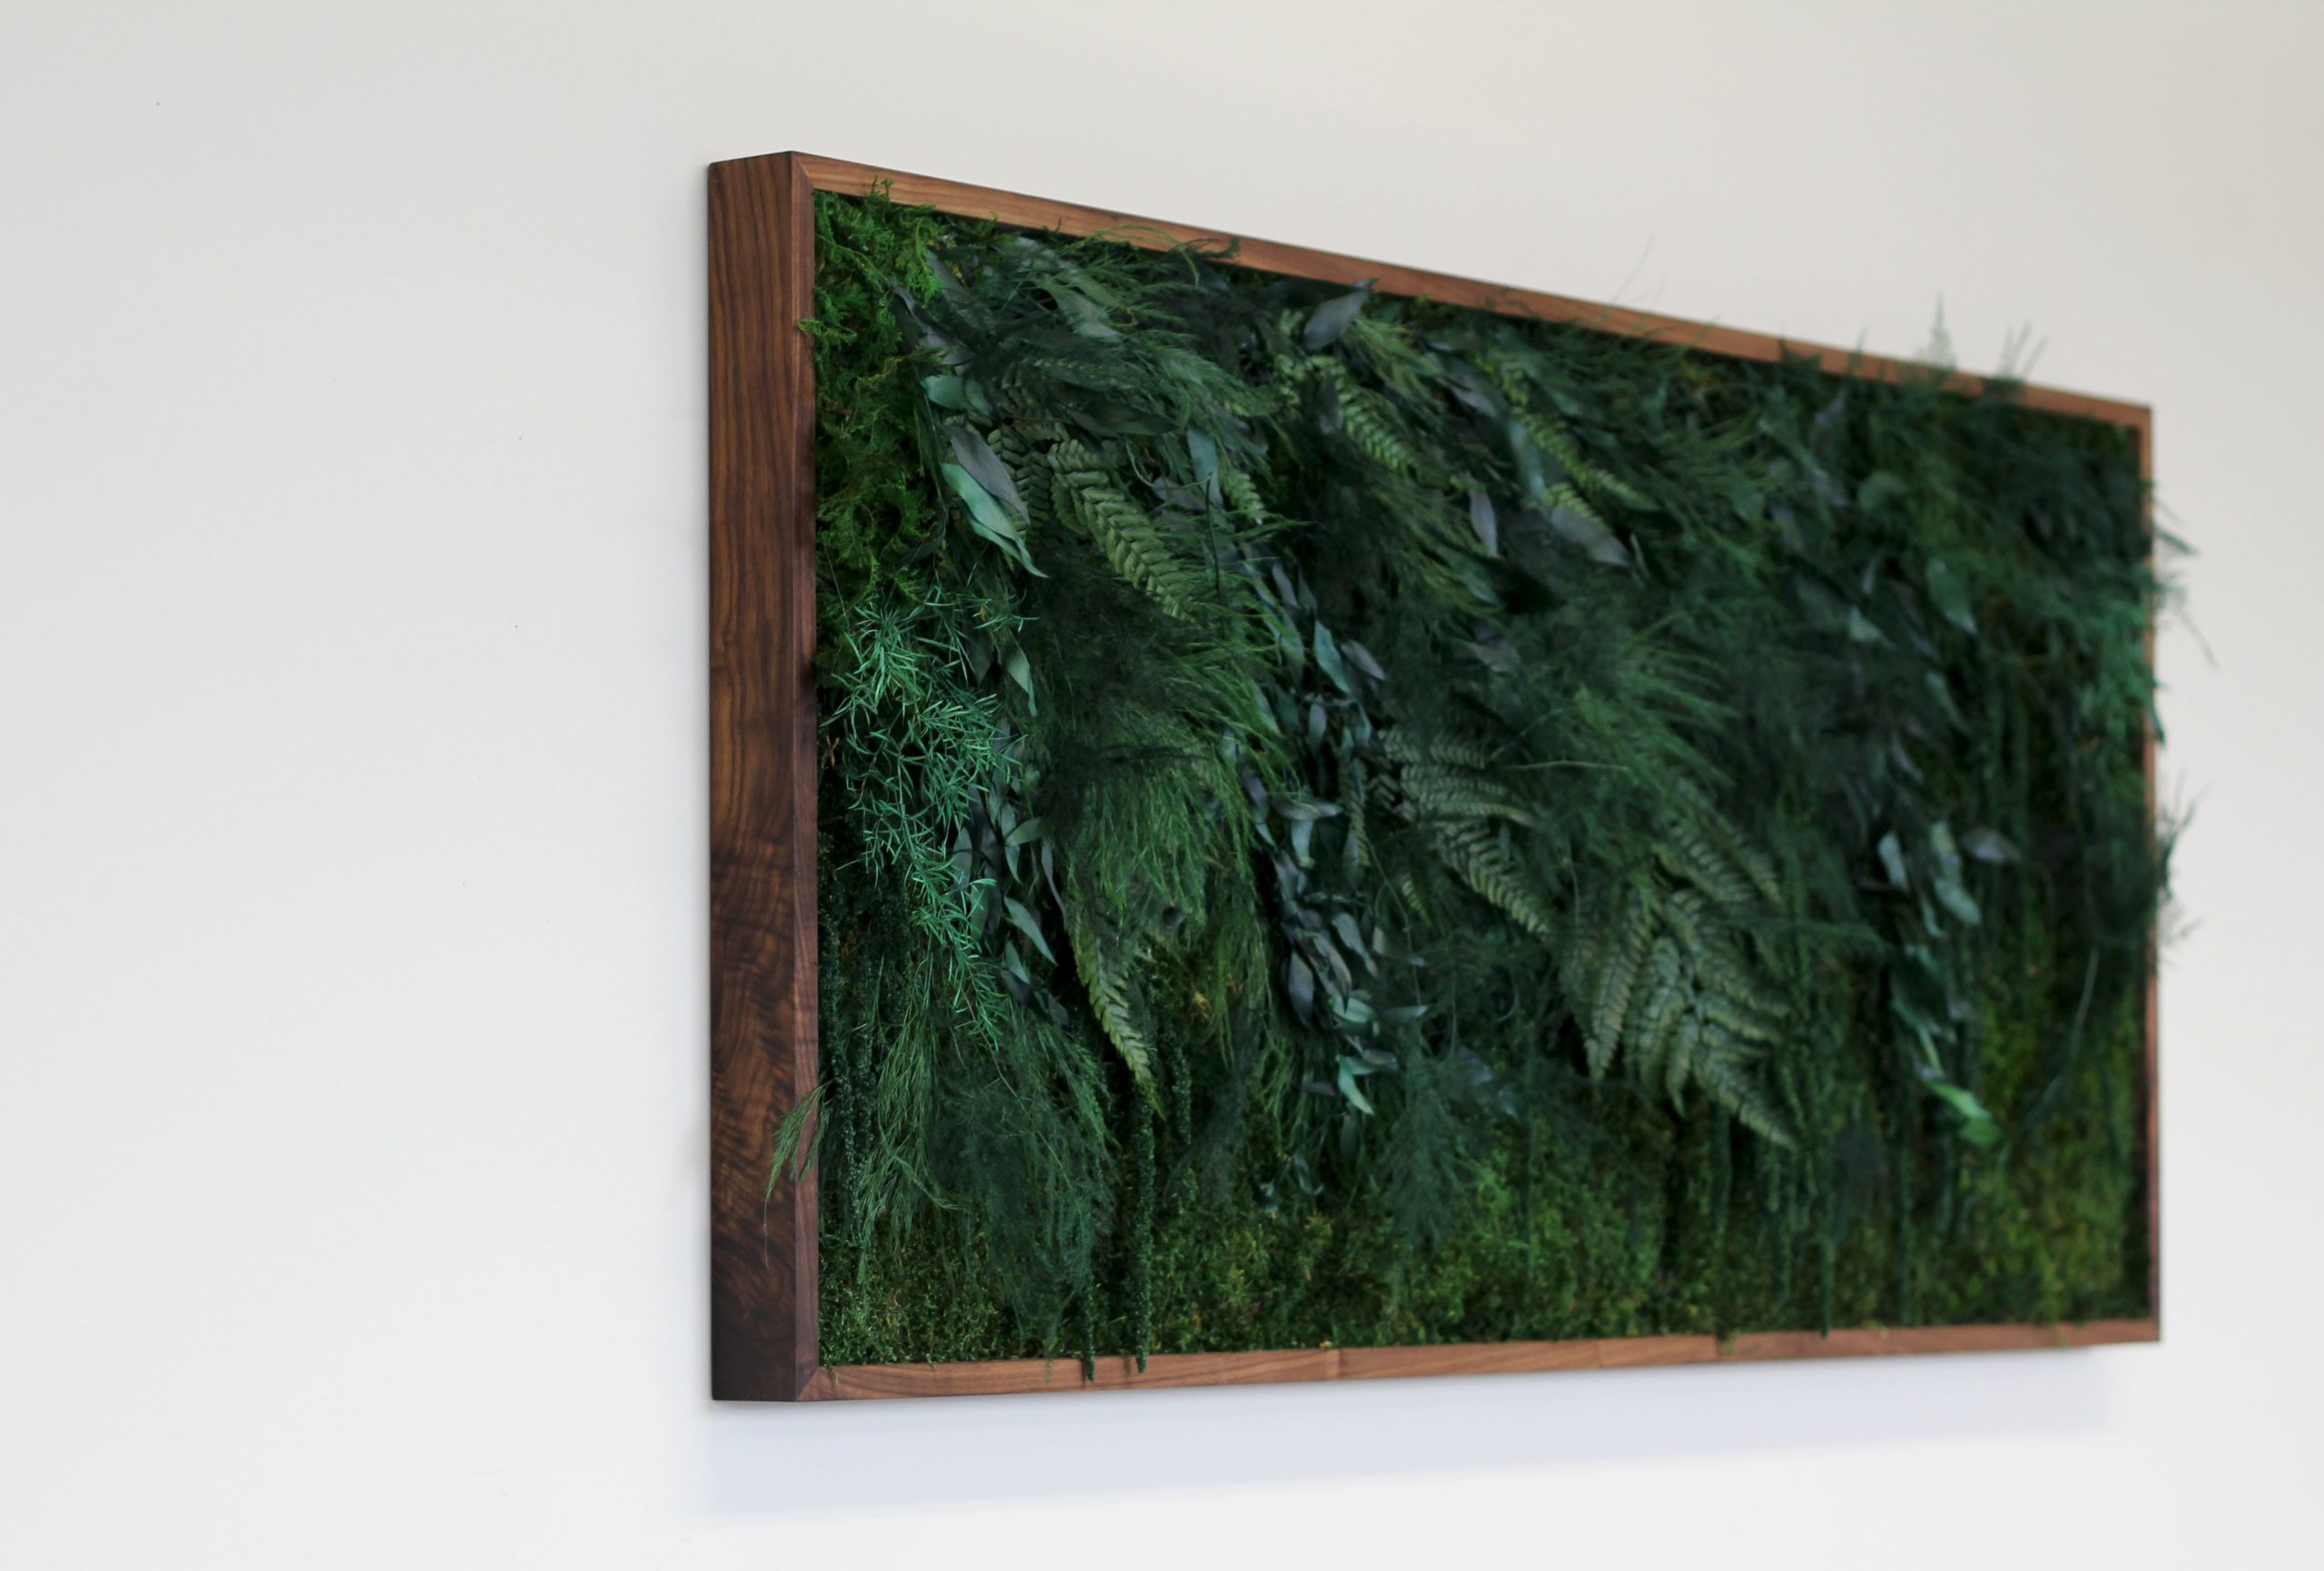 Dark green preserved moss and plant green wall in dark wood stained frame on white wall